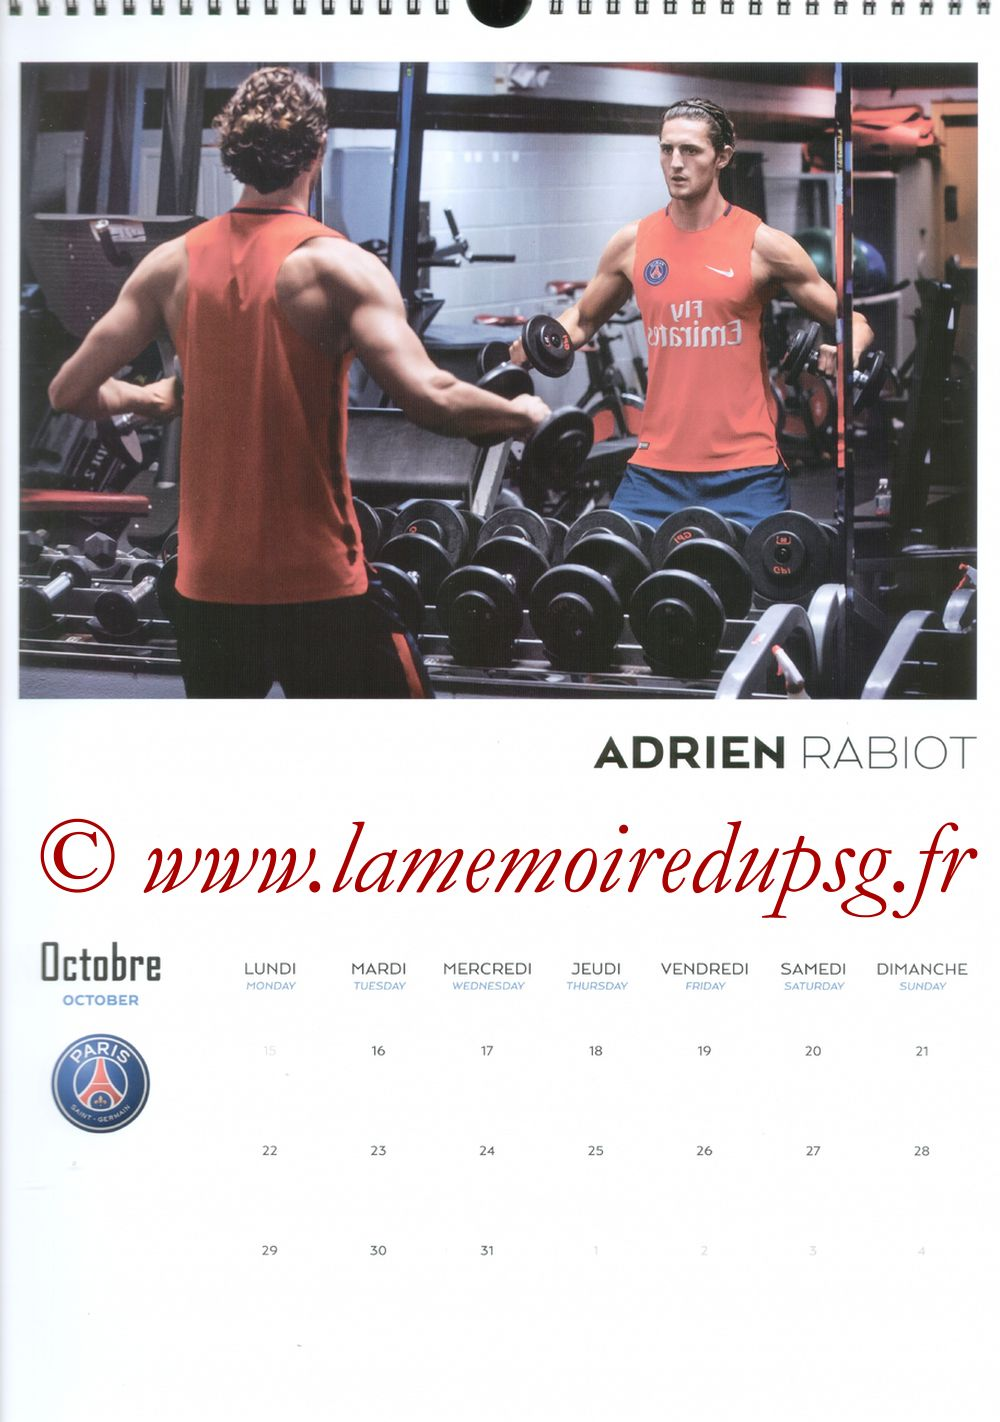 Calendrier PSG 2018 - Page 20 - Adrien RABIOT